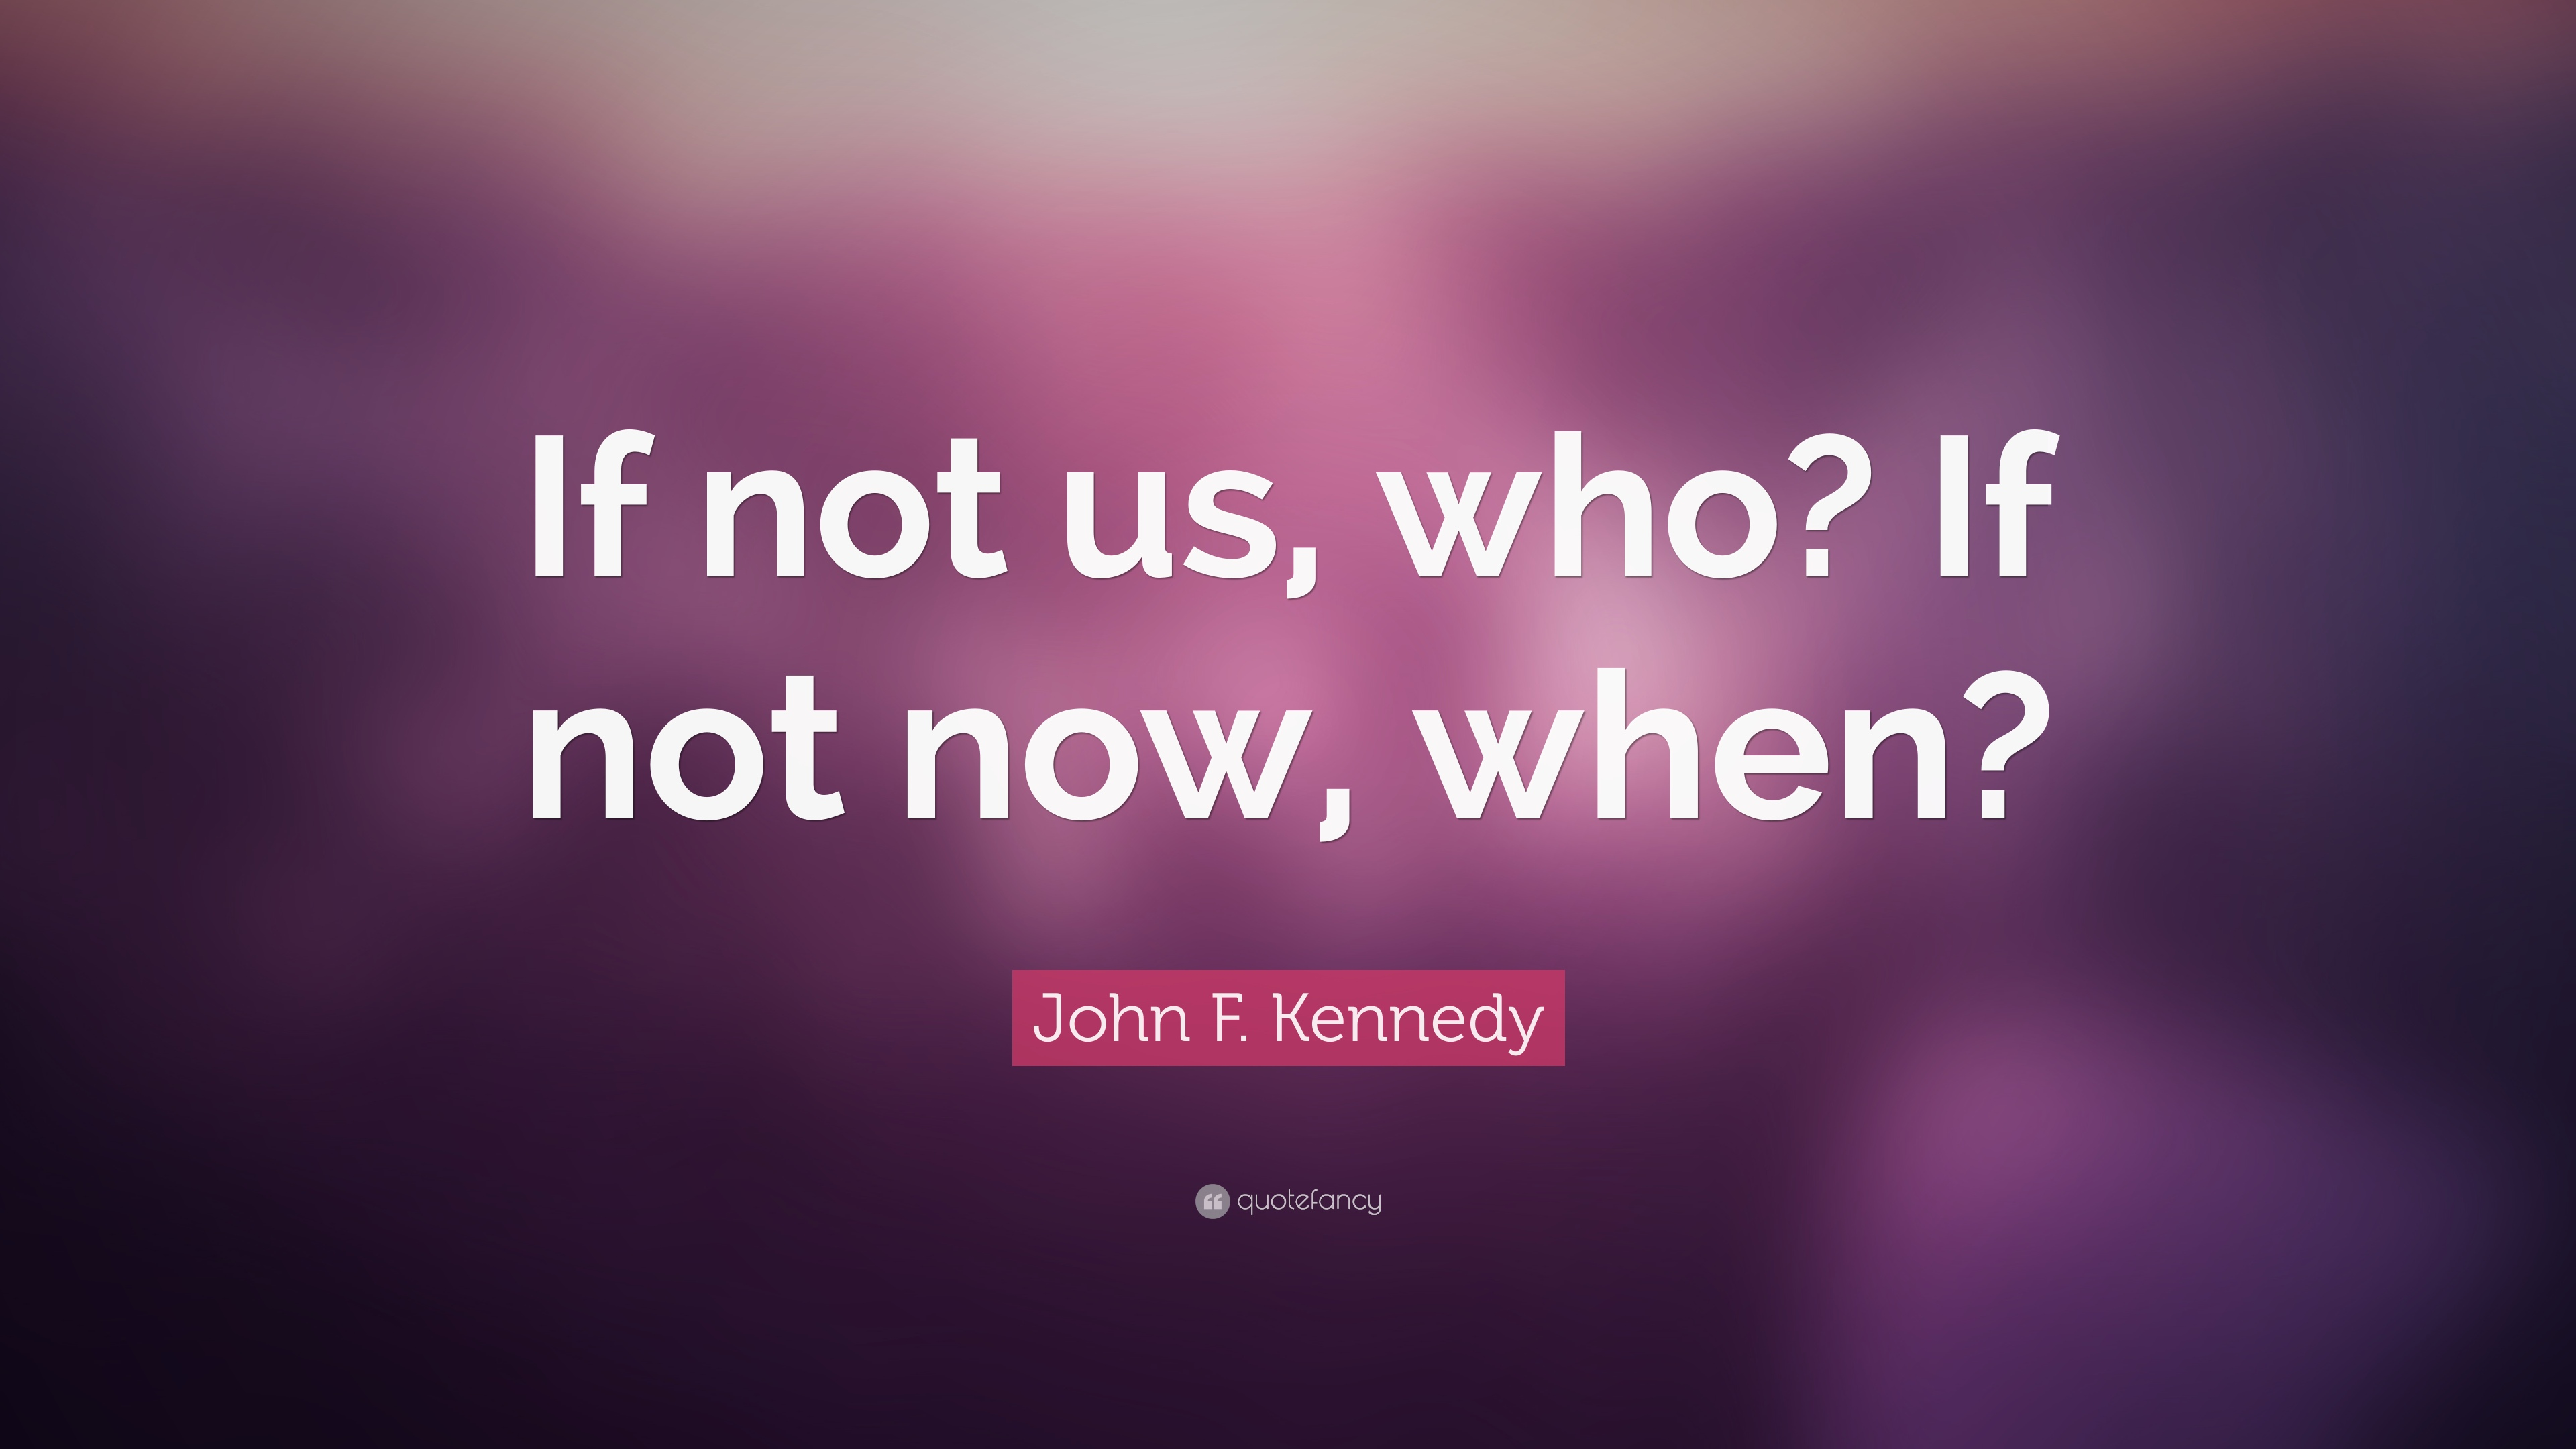 Jfk Quotes Wallpapers John F Kennedy Quote If Not Us Who If Not Now When